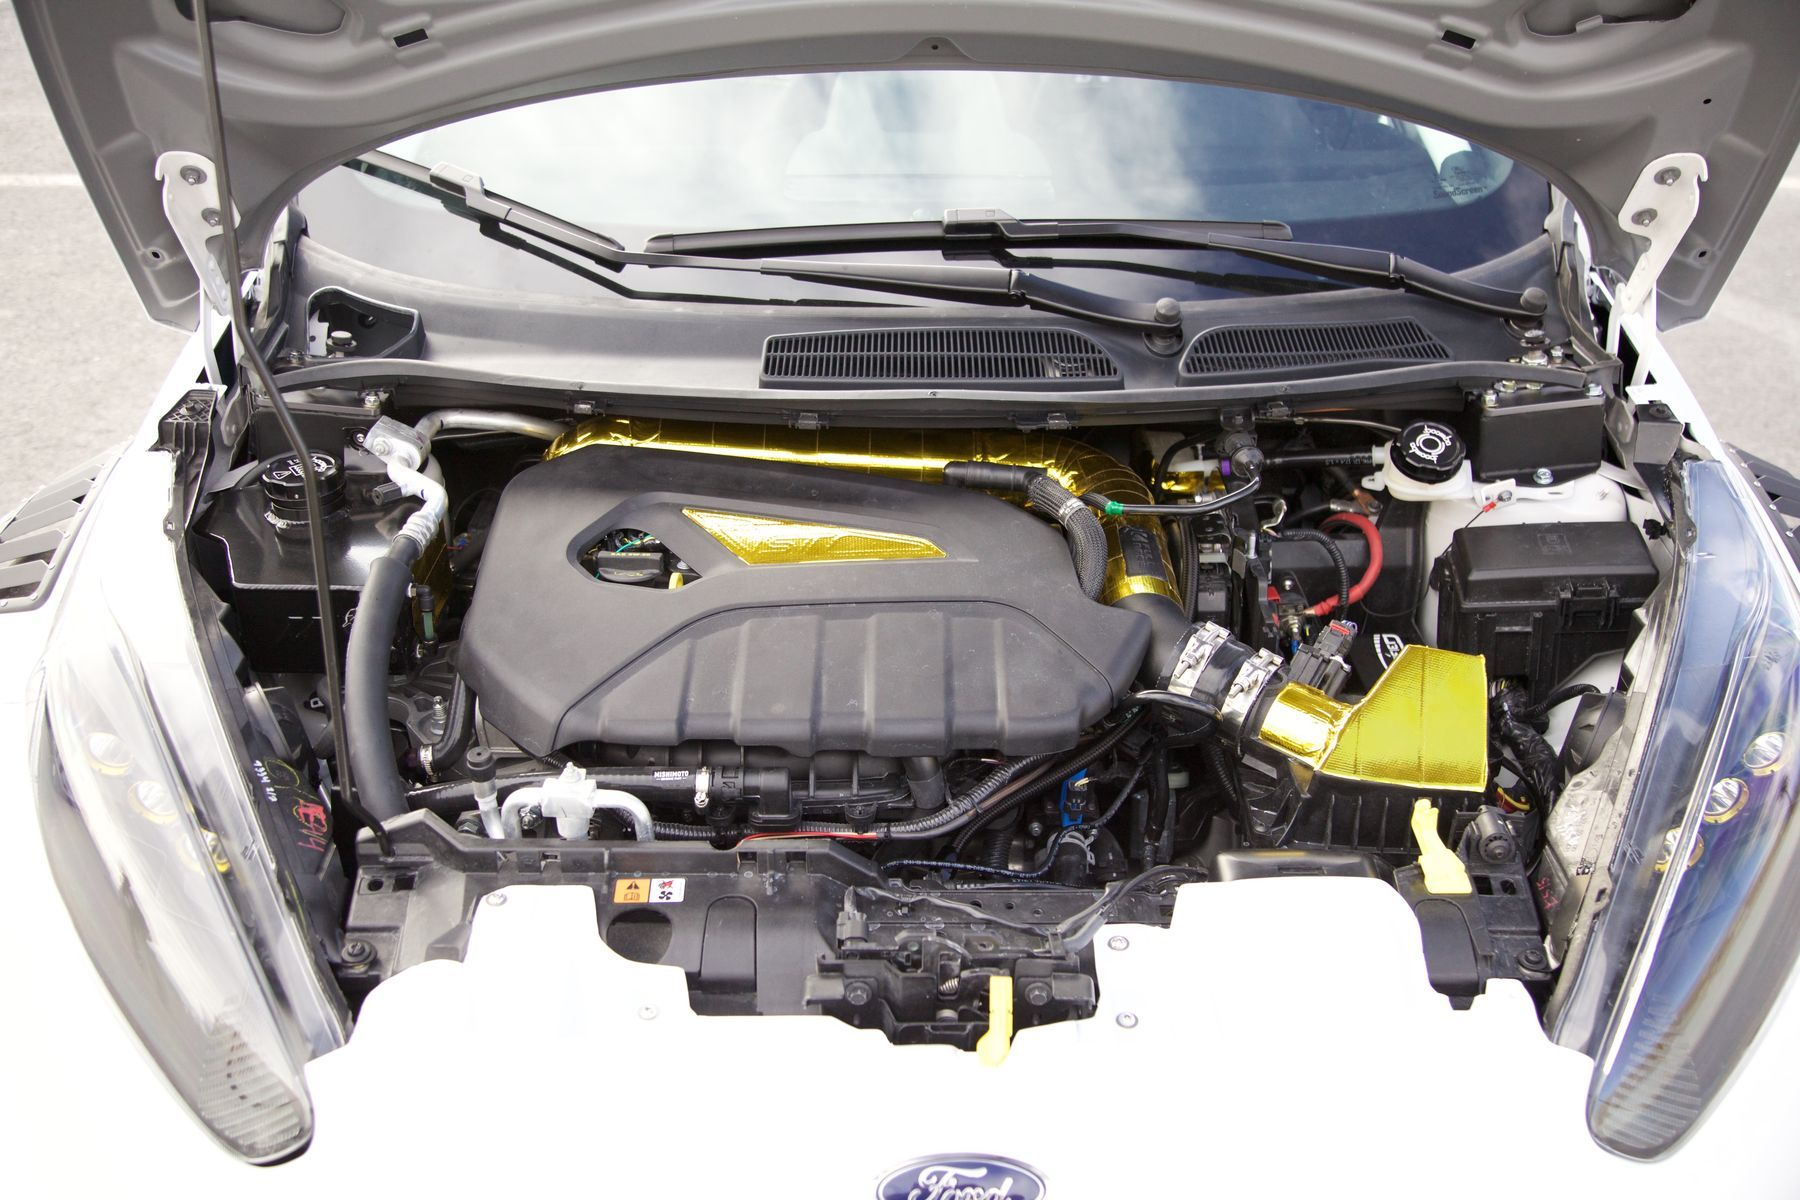 2016 Ford Fiesta St By Tucci Hot Rods Engine Bay